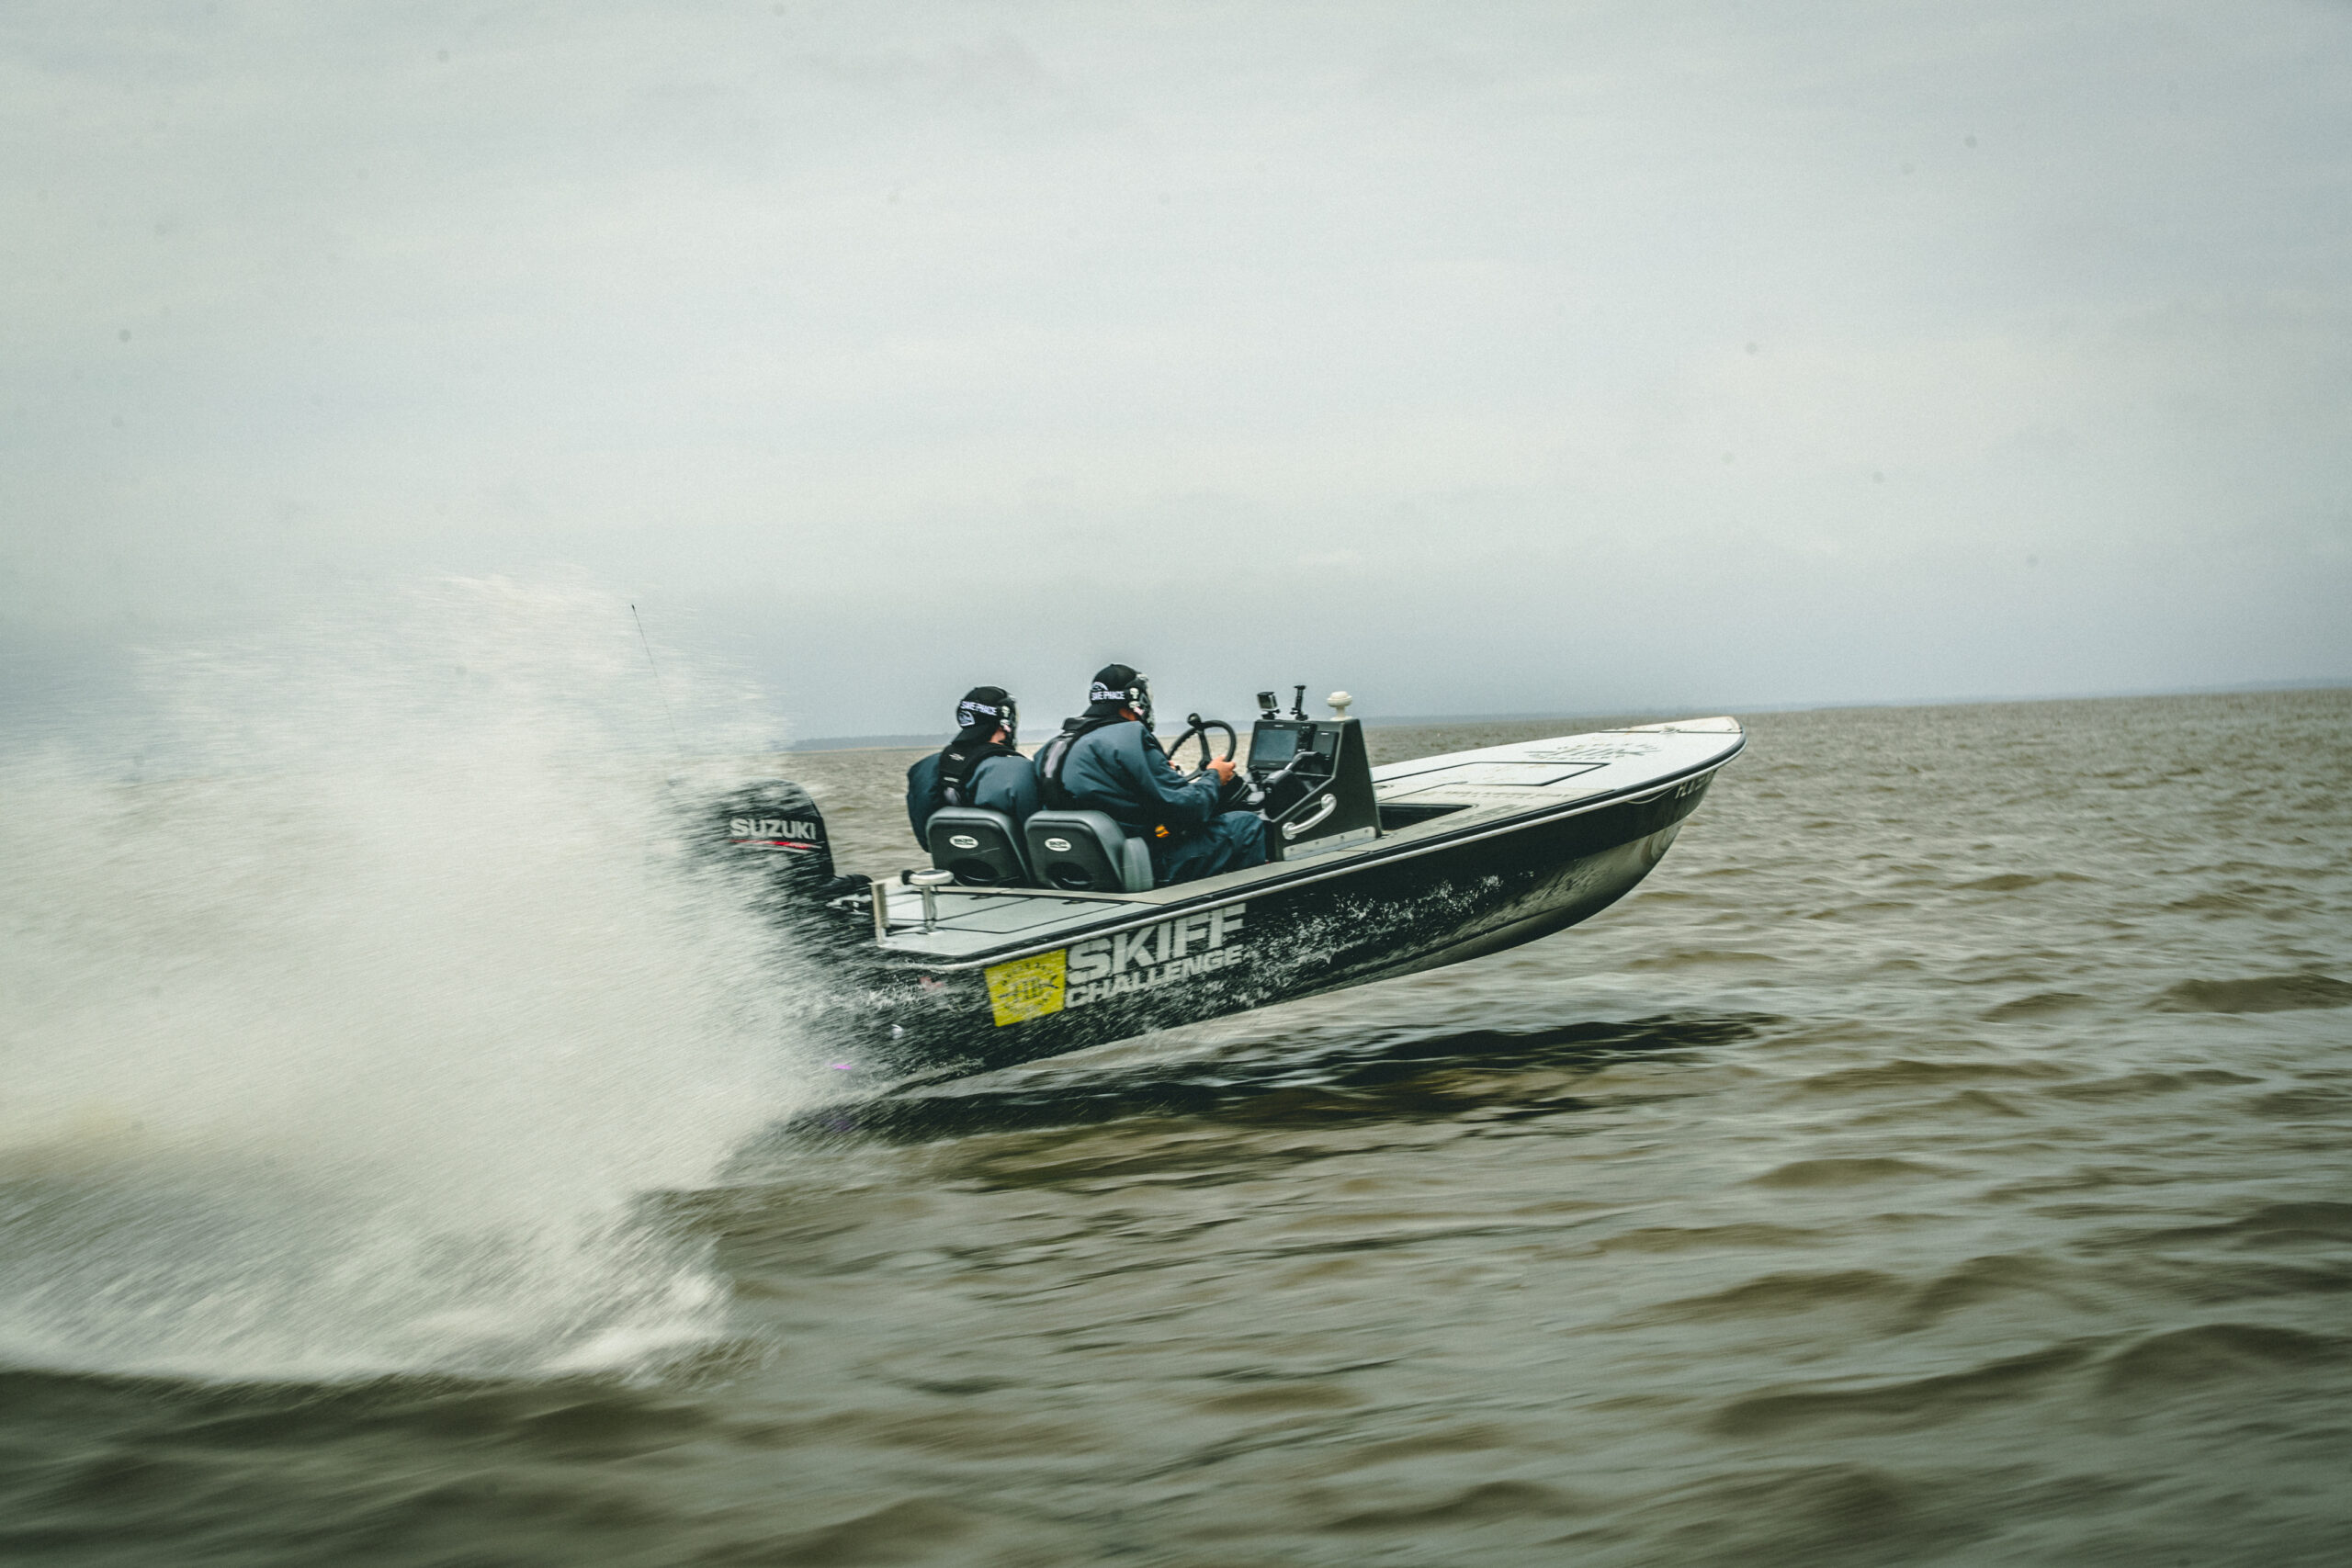 Hell's Bay Boatworks Team First to Complete Florida Skiff Challenge… Again!